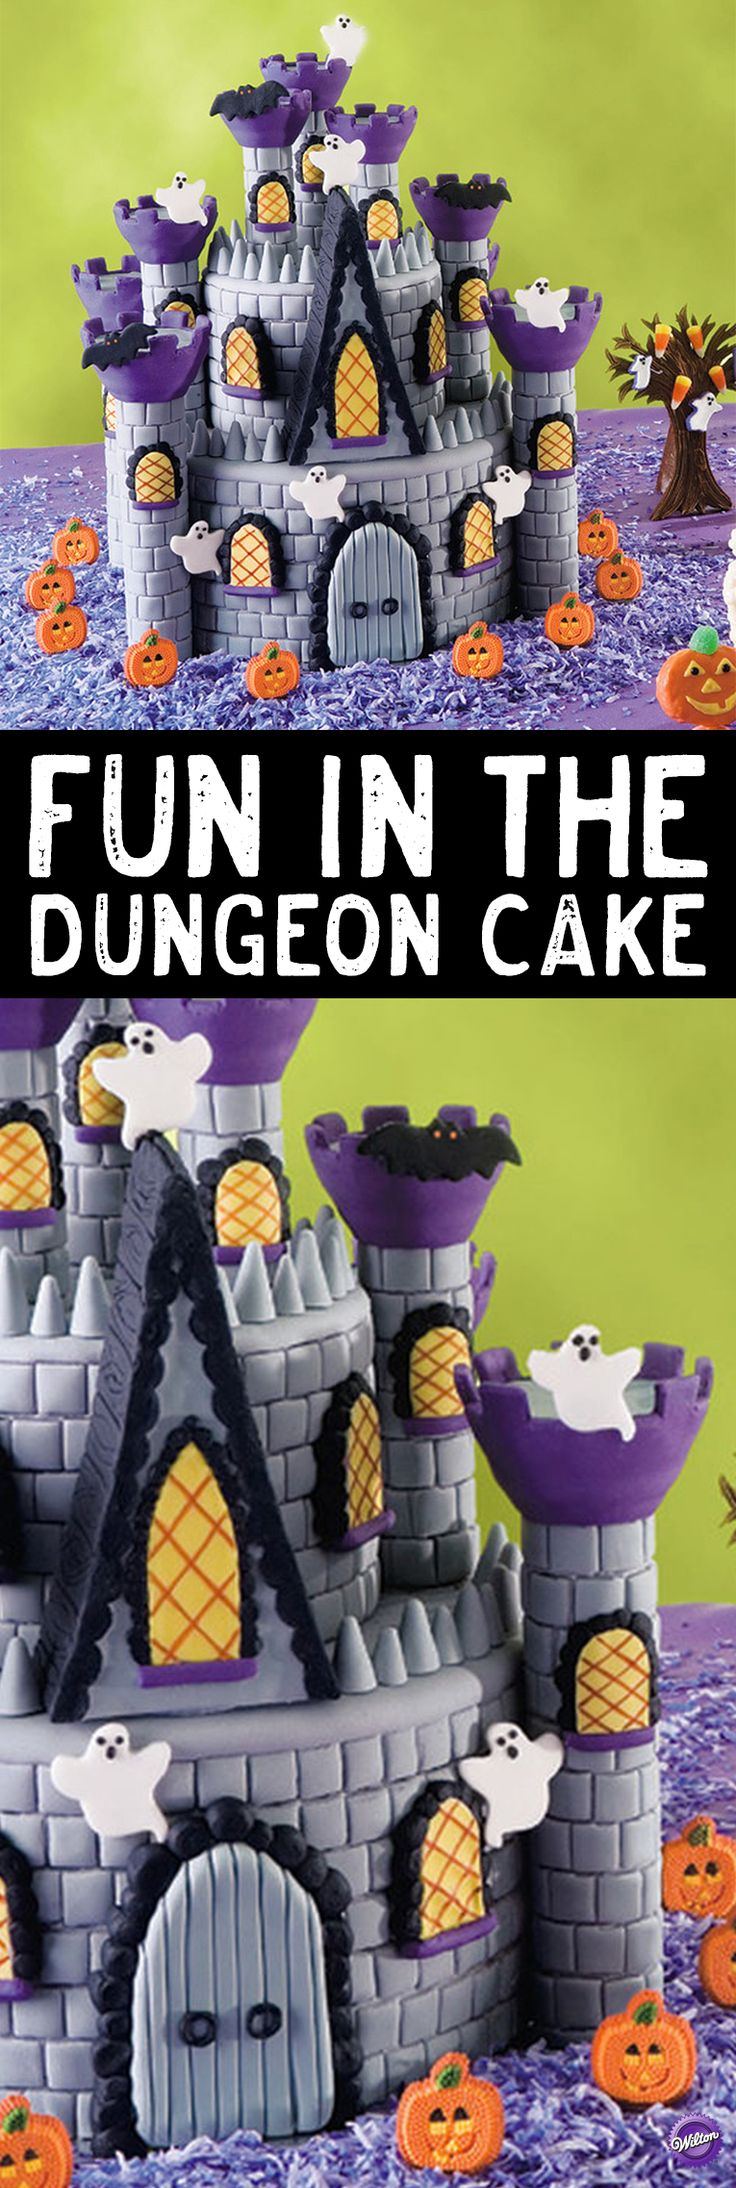 "Learn to make this ""Fun in the Dungeon Cake"" that captures the ghostly glow of a Transylvanian twilight. Great details pop up from every corner, including fondant masonry, lattice windows, hovering ghosts and bats in the belfry. It serves as a great centerpiece for your Halloween gathering."